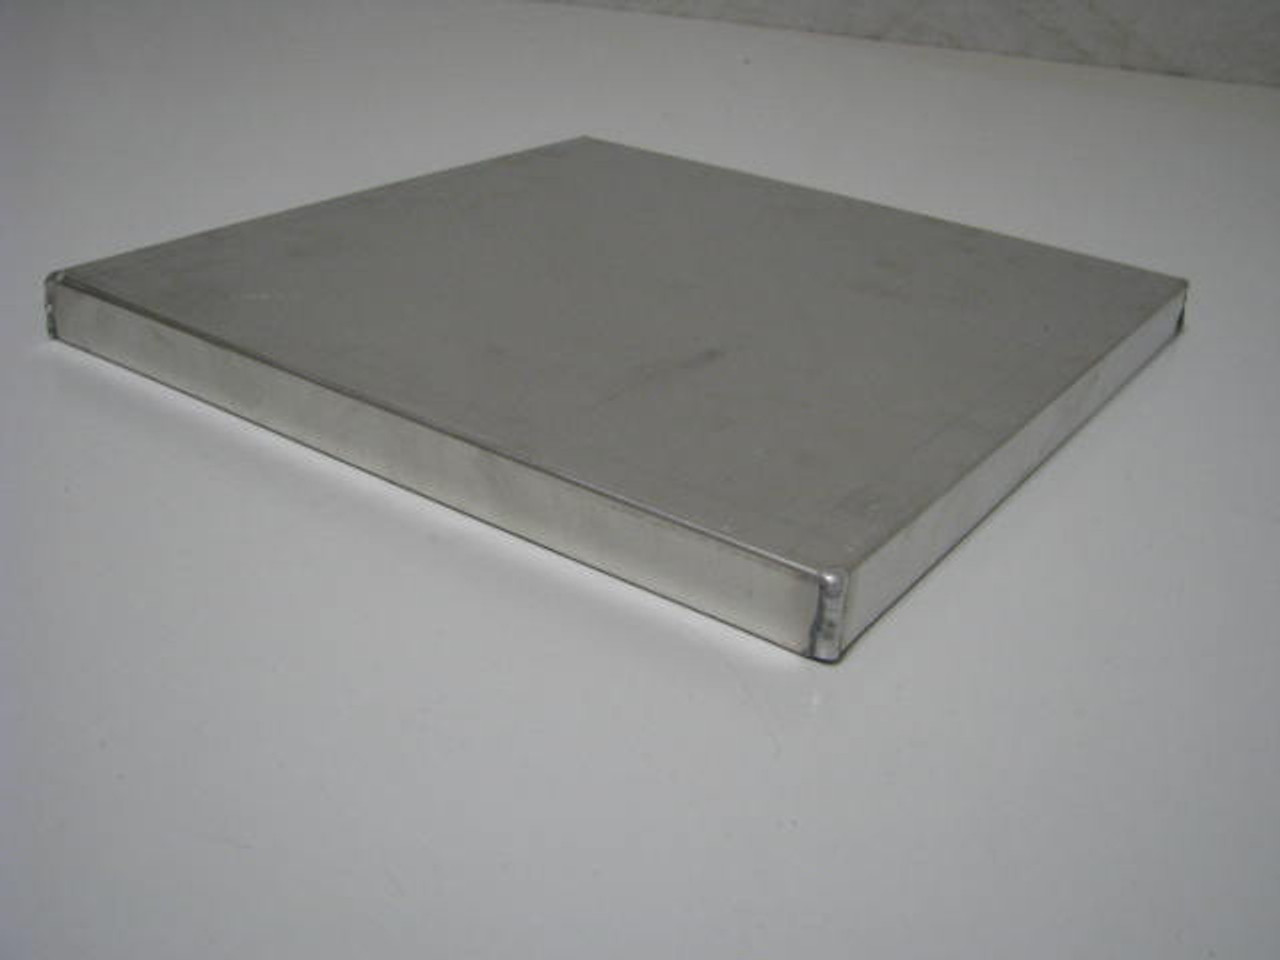 "Aluminum Vent Cover - 9.75"" x 9.75"" (CBP008)  ANGLED VIEW"